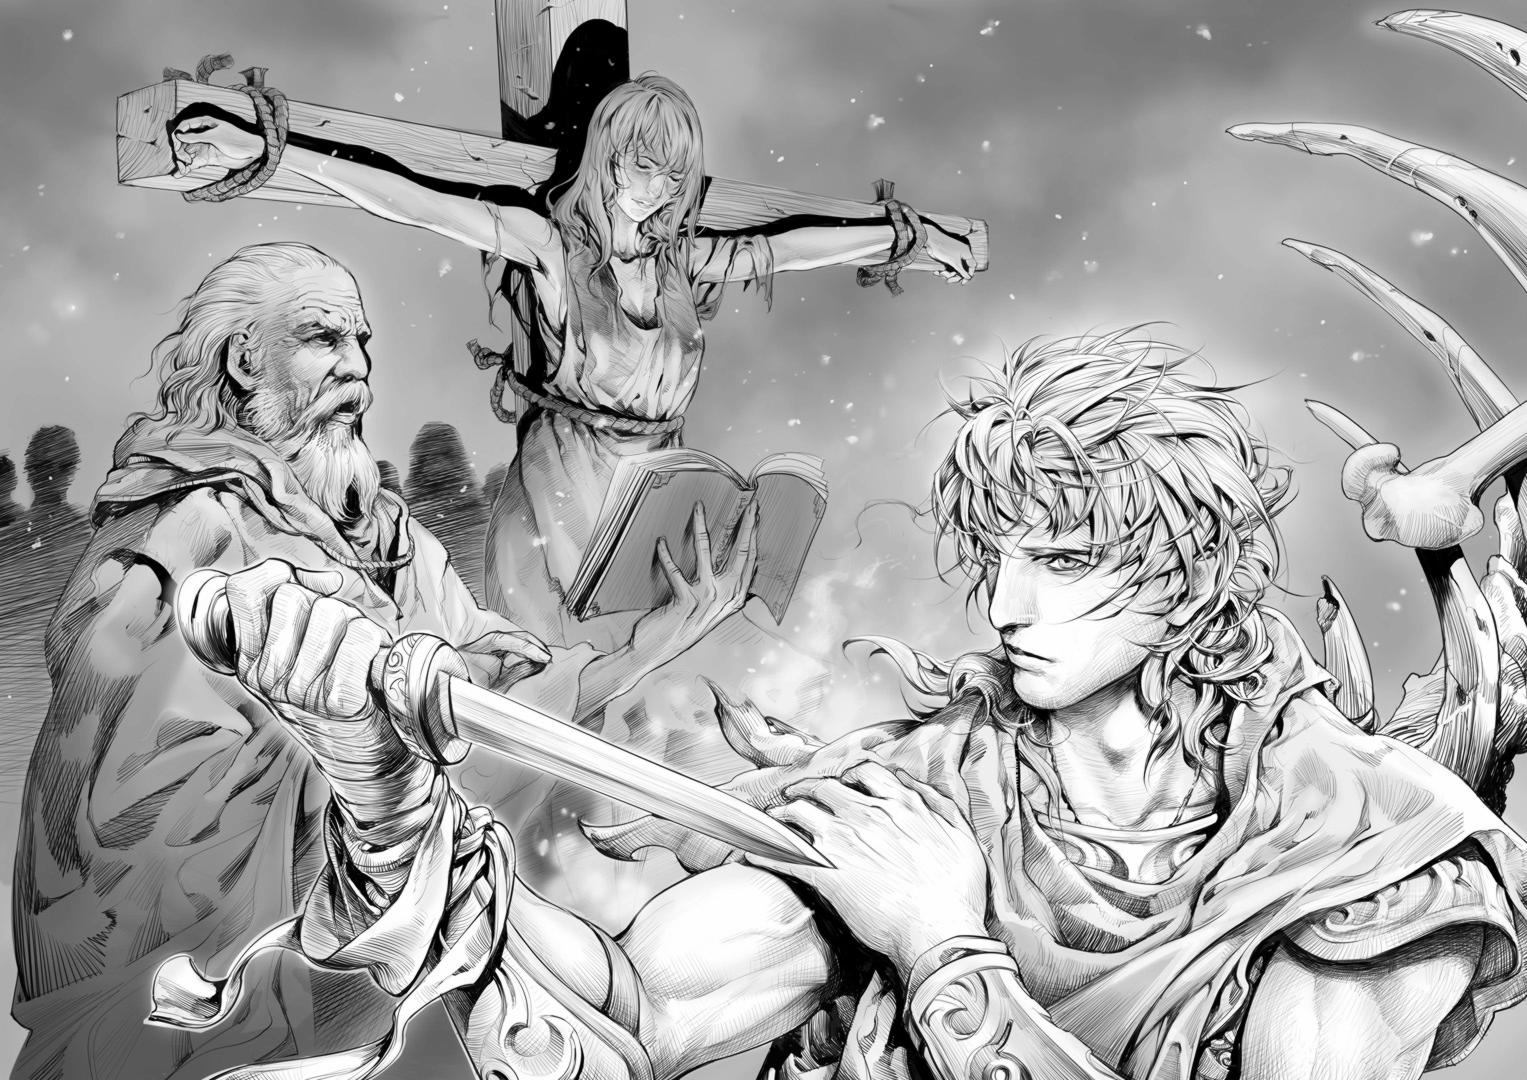 illus_for_novel___immortal_man___by_zhoupeng-d32ni4m